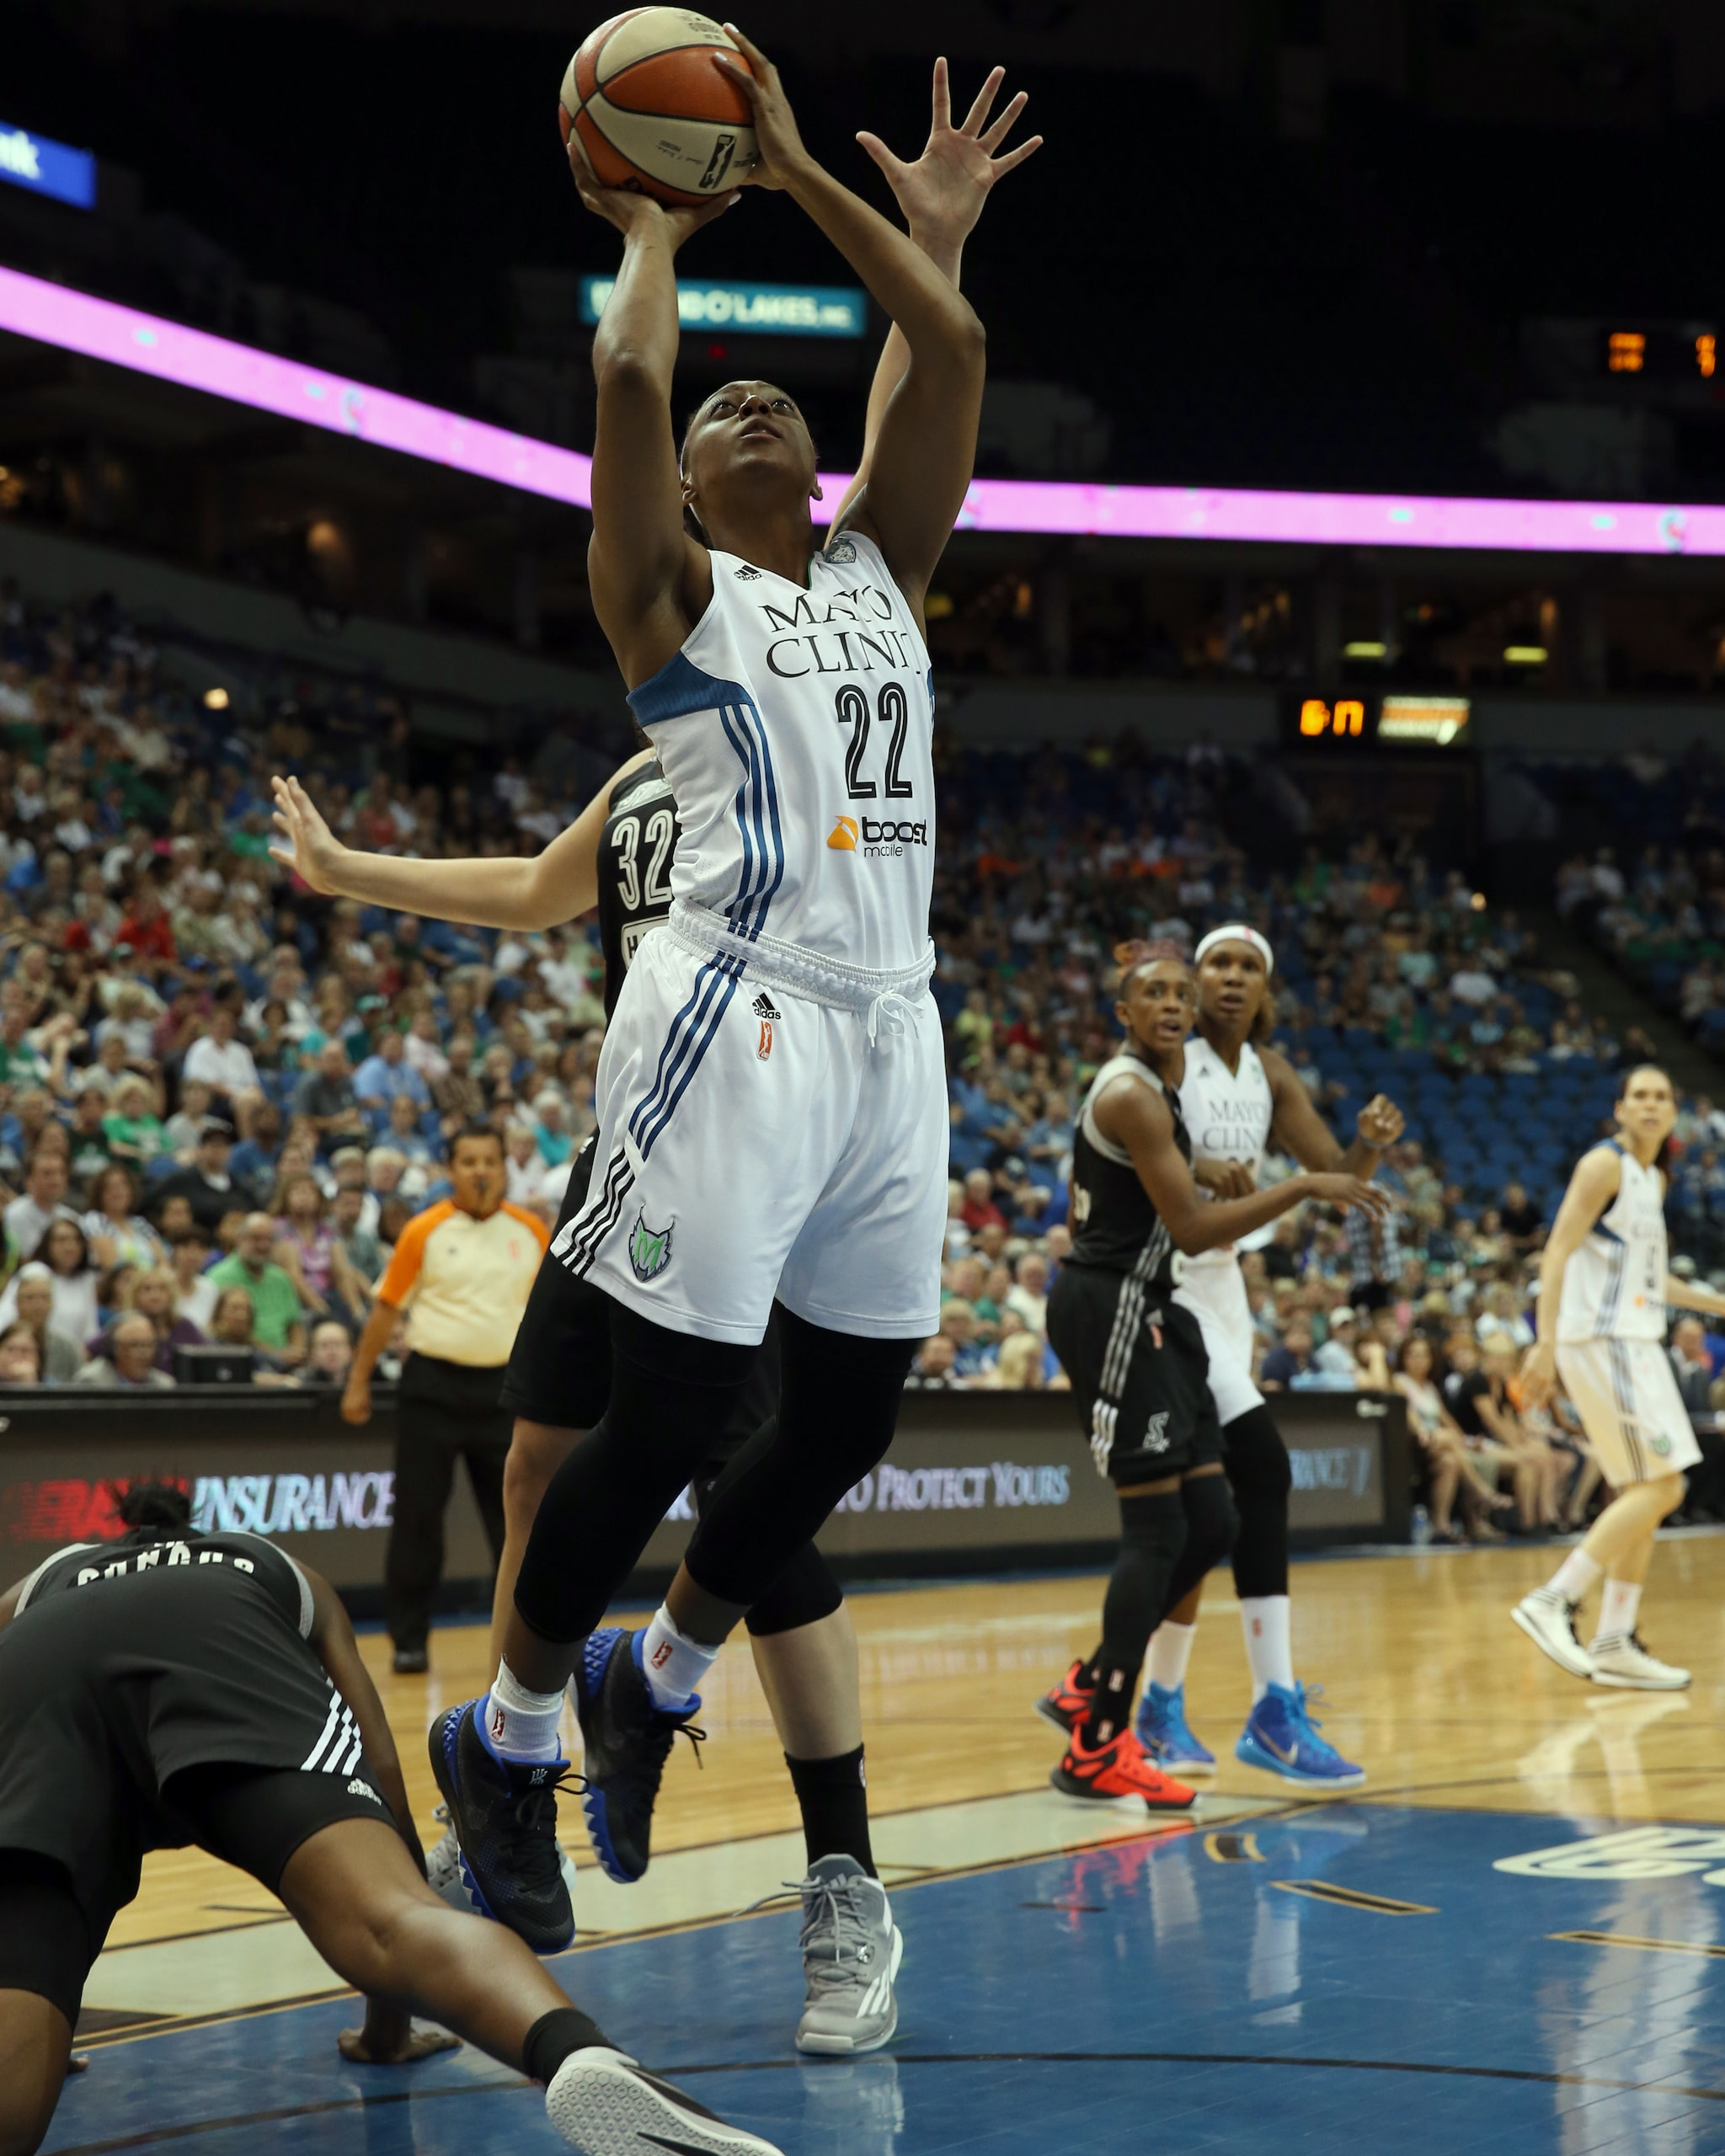 Lynx guard Monica Wright struggled against San Antonio going 0-of-4 from the floor in just over seven minutes of playing time.